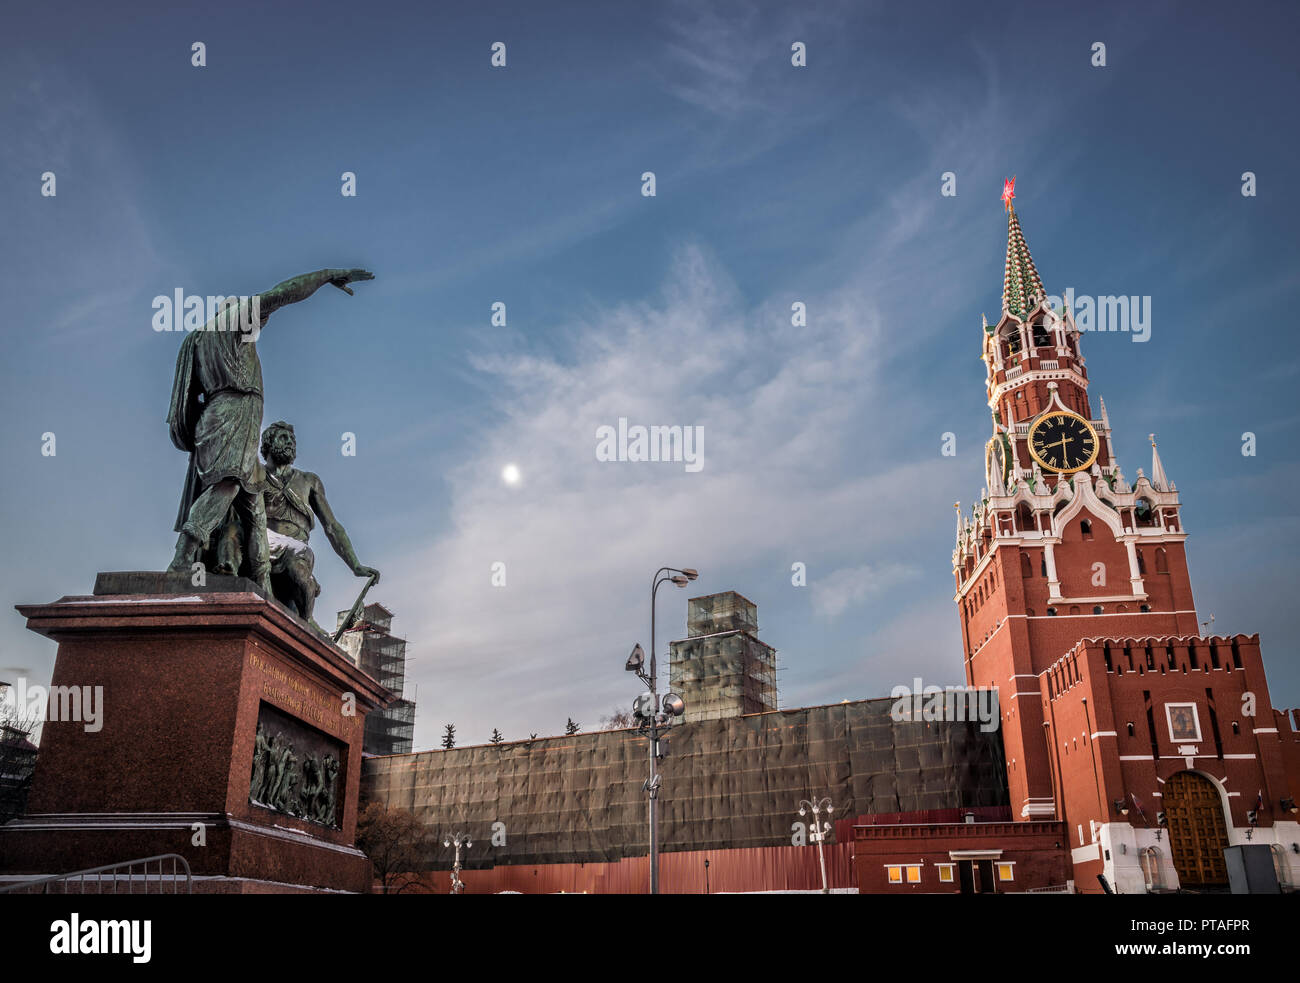 Monument to Minin and Pozharsky. Kremlin, Moscow, Russia. January 9, 2018 - Stock Image